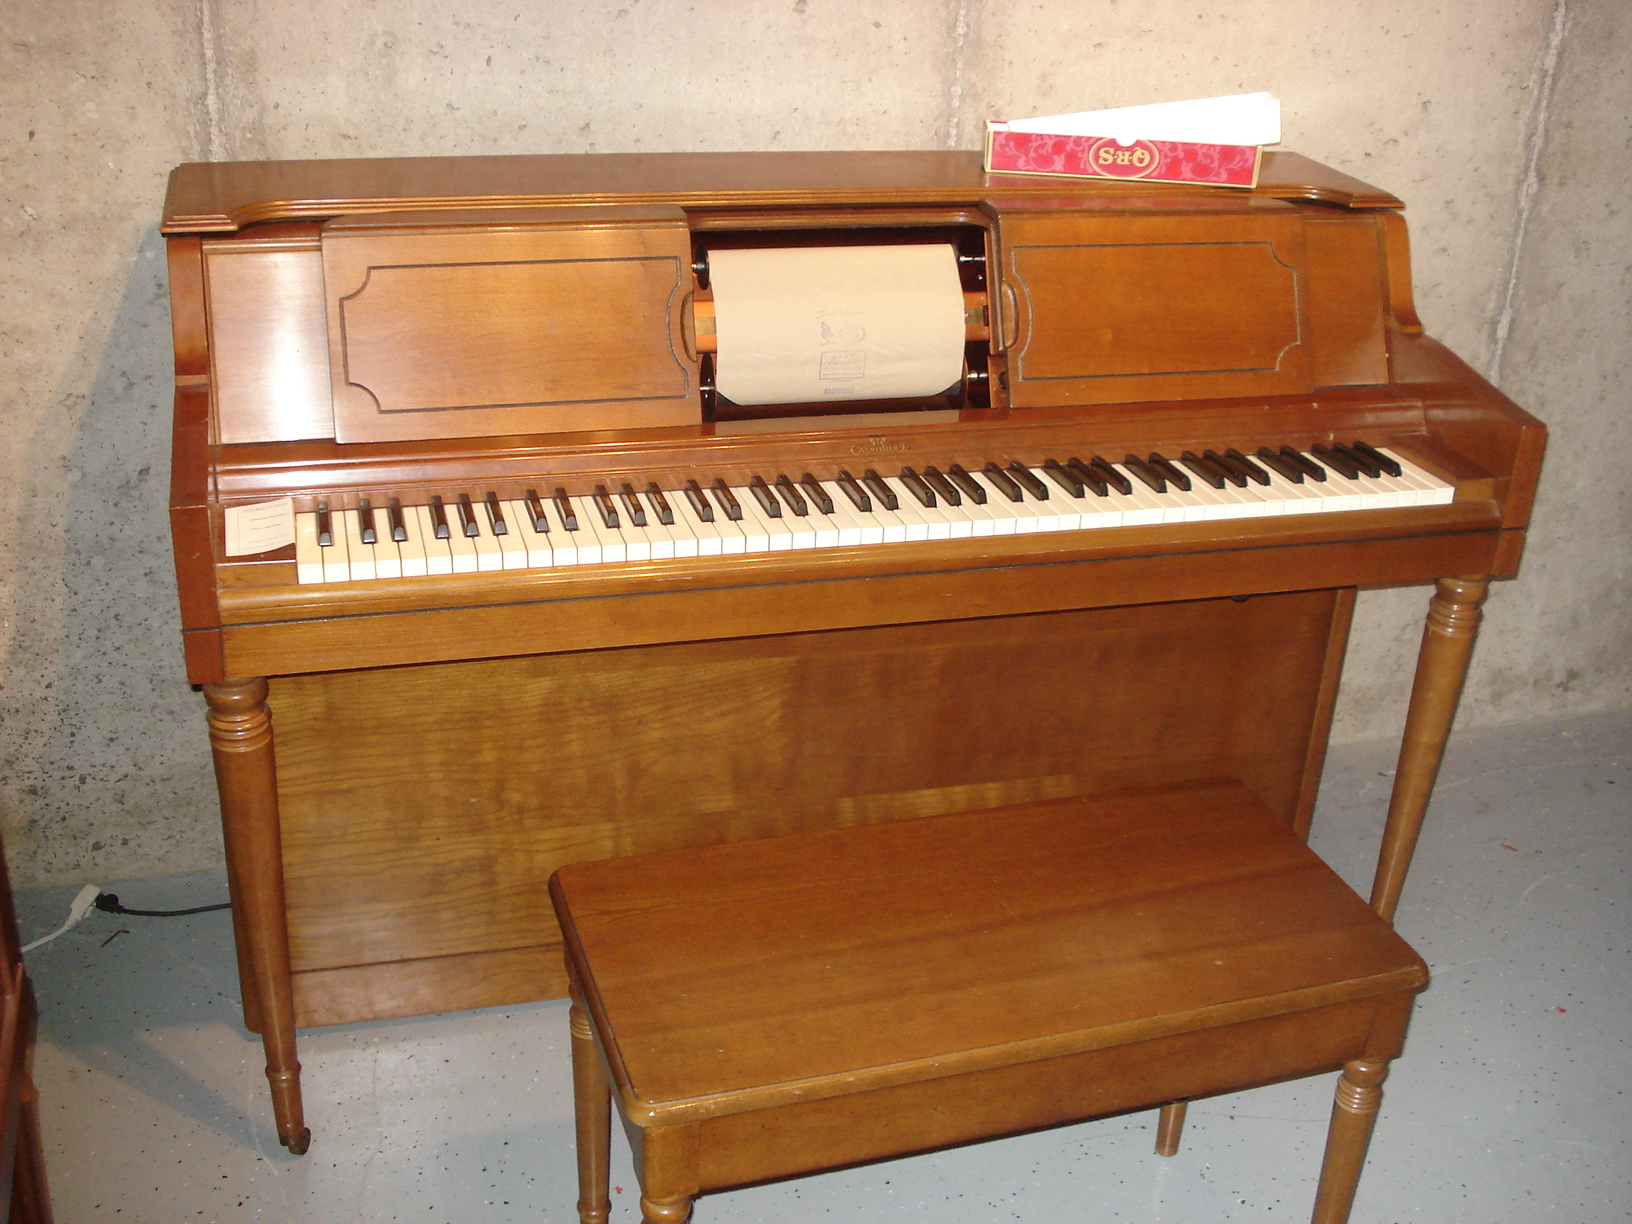 1971 Wurlitzer Spinet Player